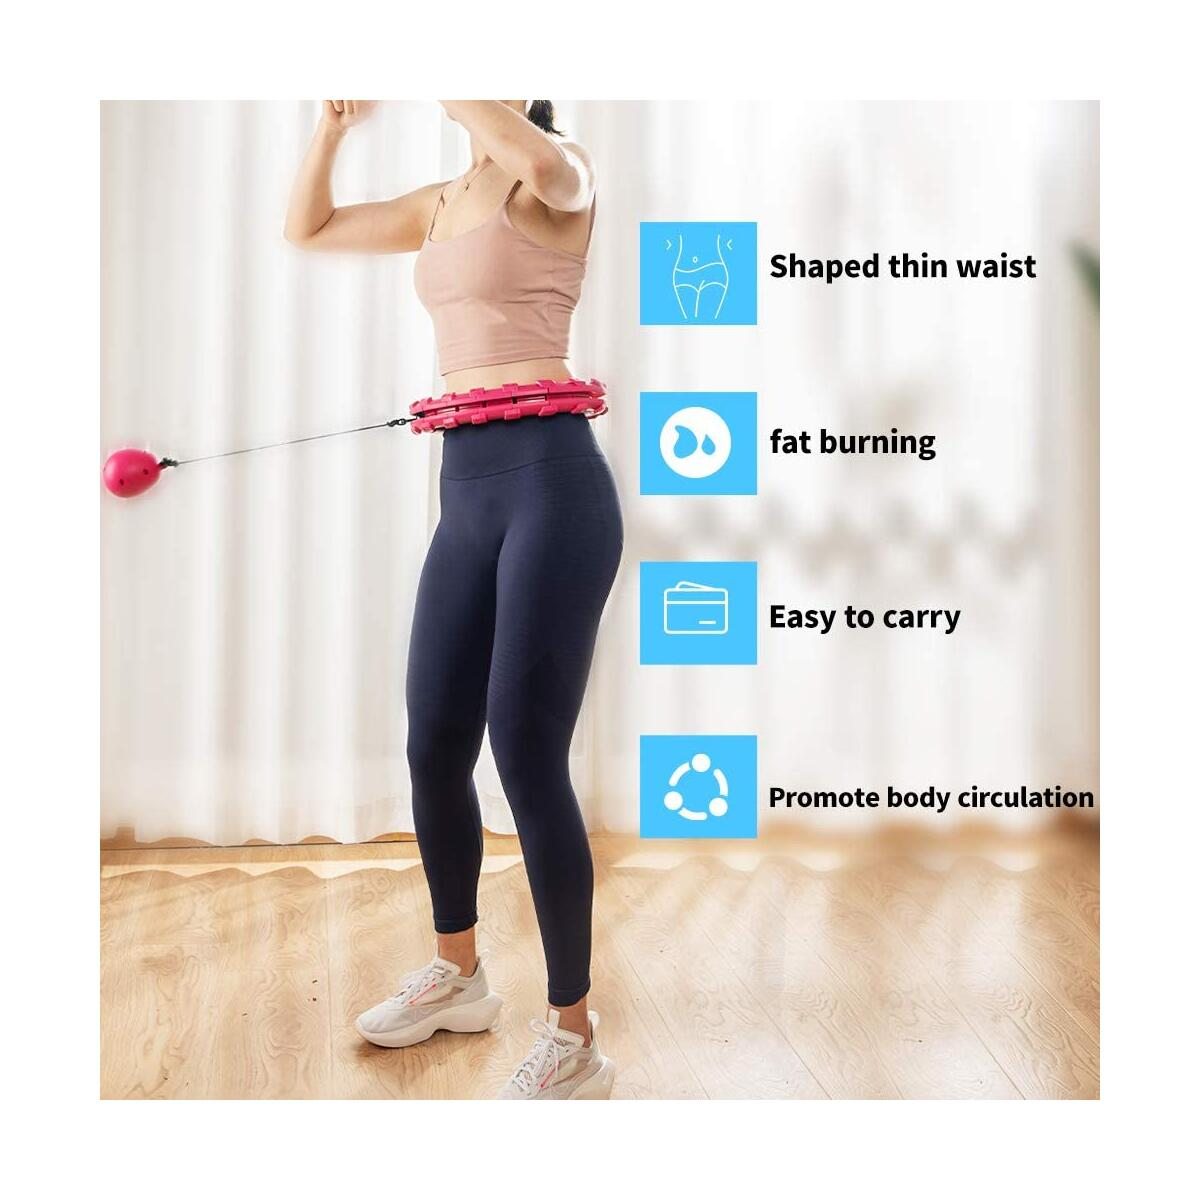 MAS Smart Hula Hoop for Adults Weight Loss, Weighted Hula Hoop for Exercise 24 Detachable Knots do not Fall Off Fitness Circle, Thin Waist and Abdomen for Home Beginner Kids Women